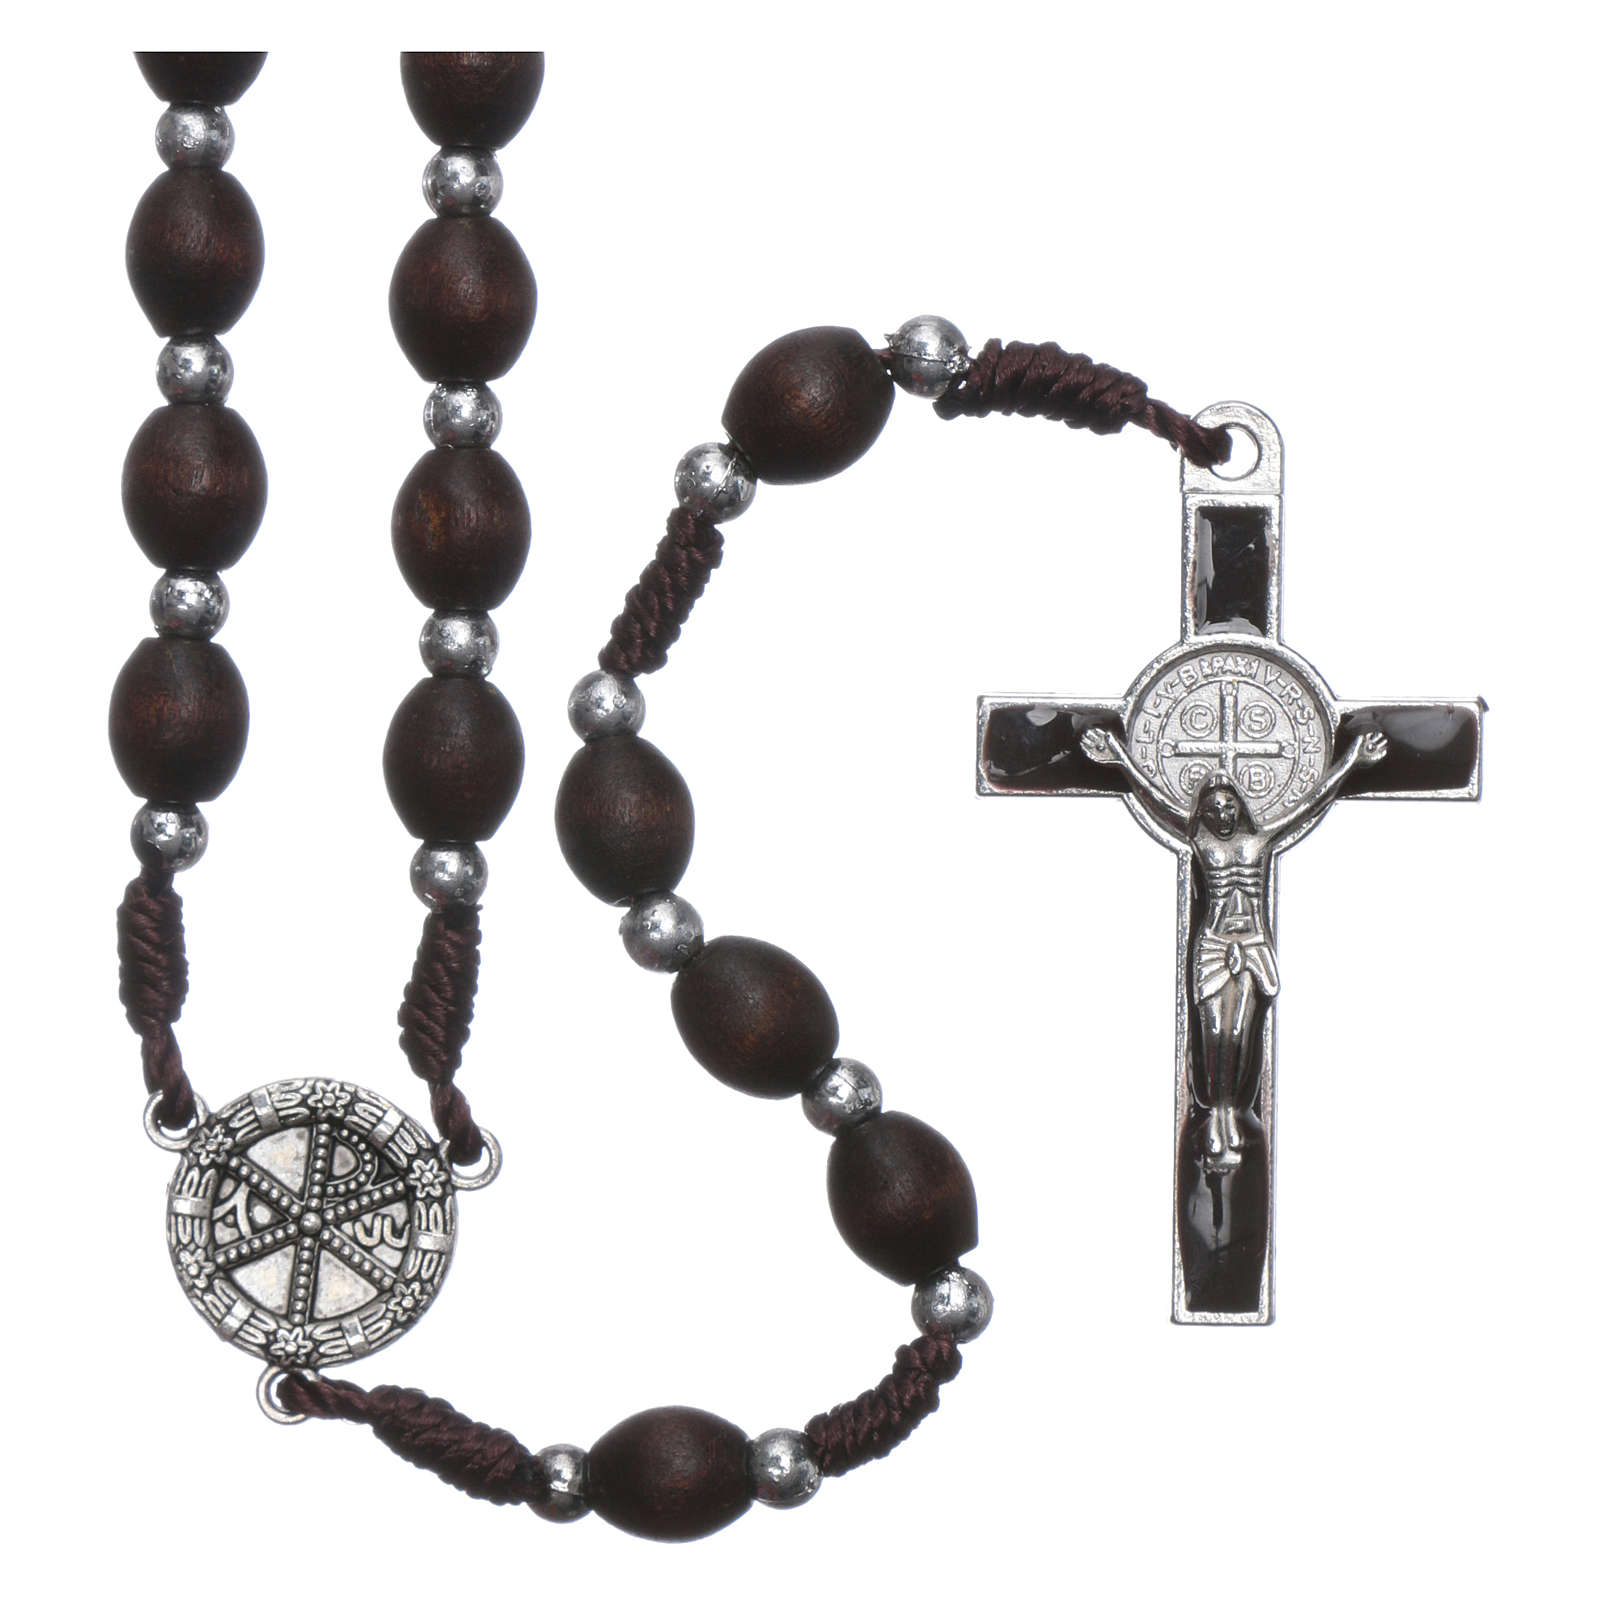 Rosary in oval wood brown with pearls in silver setting 4